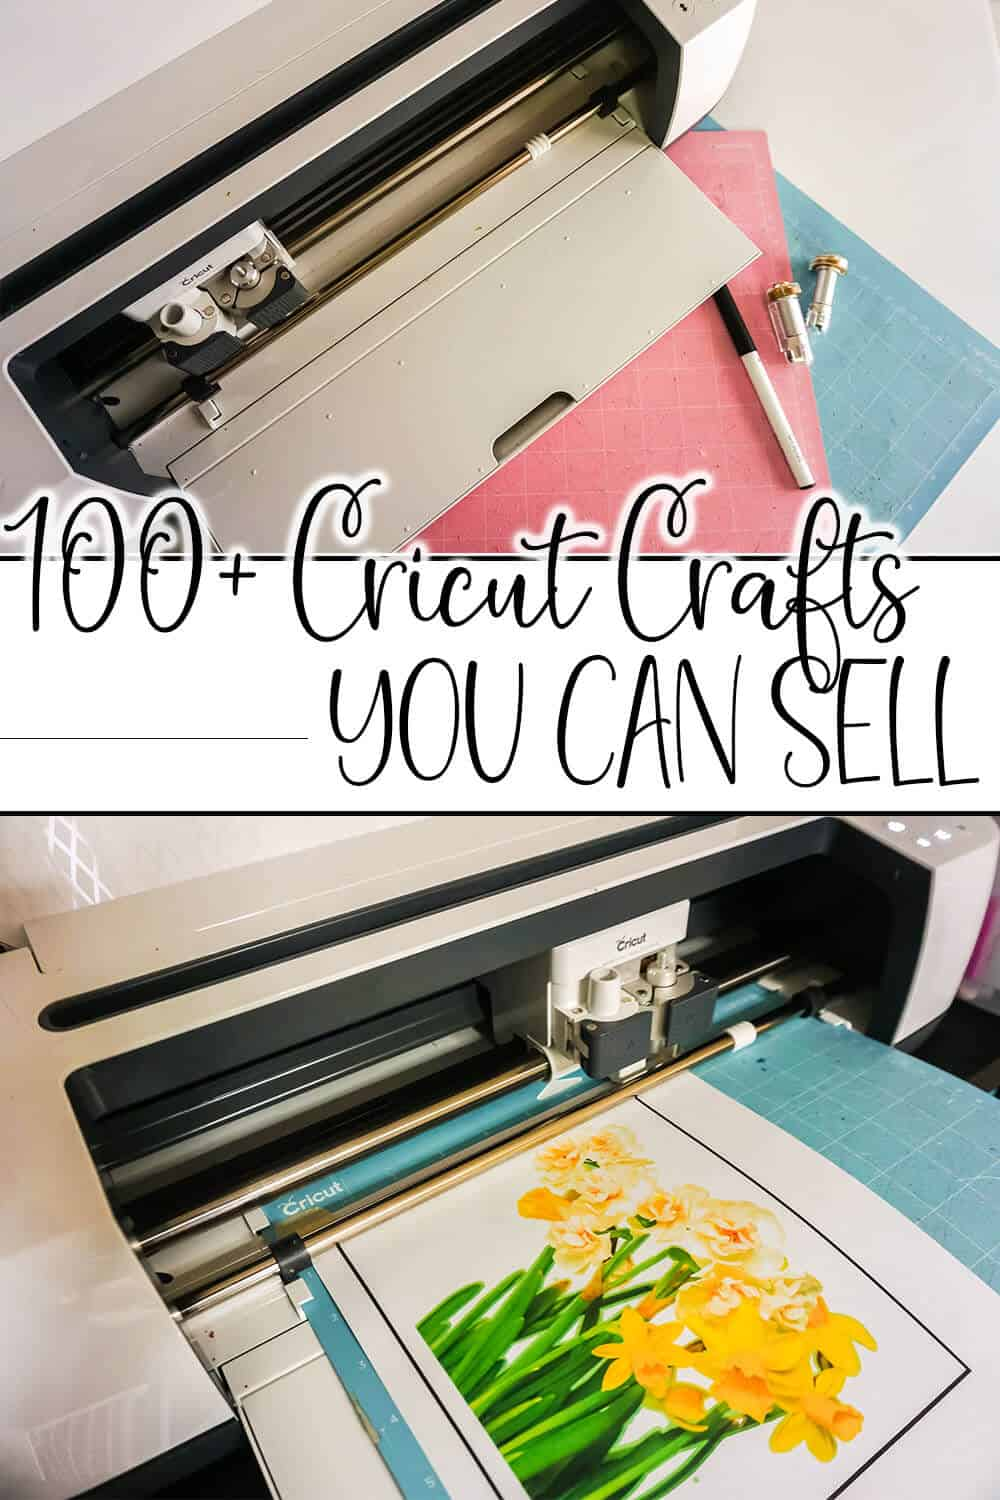 photo collage of cricut cutting craft items to sell on etsy with text which reads 100+ cricut crafts you can sell